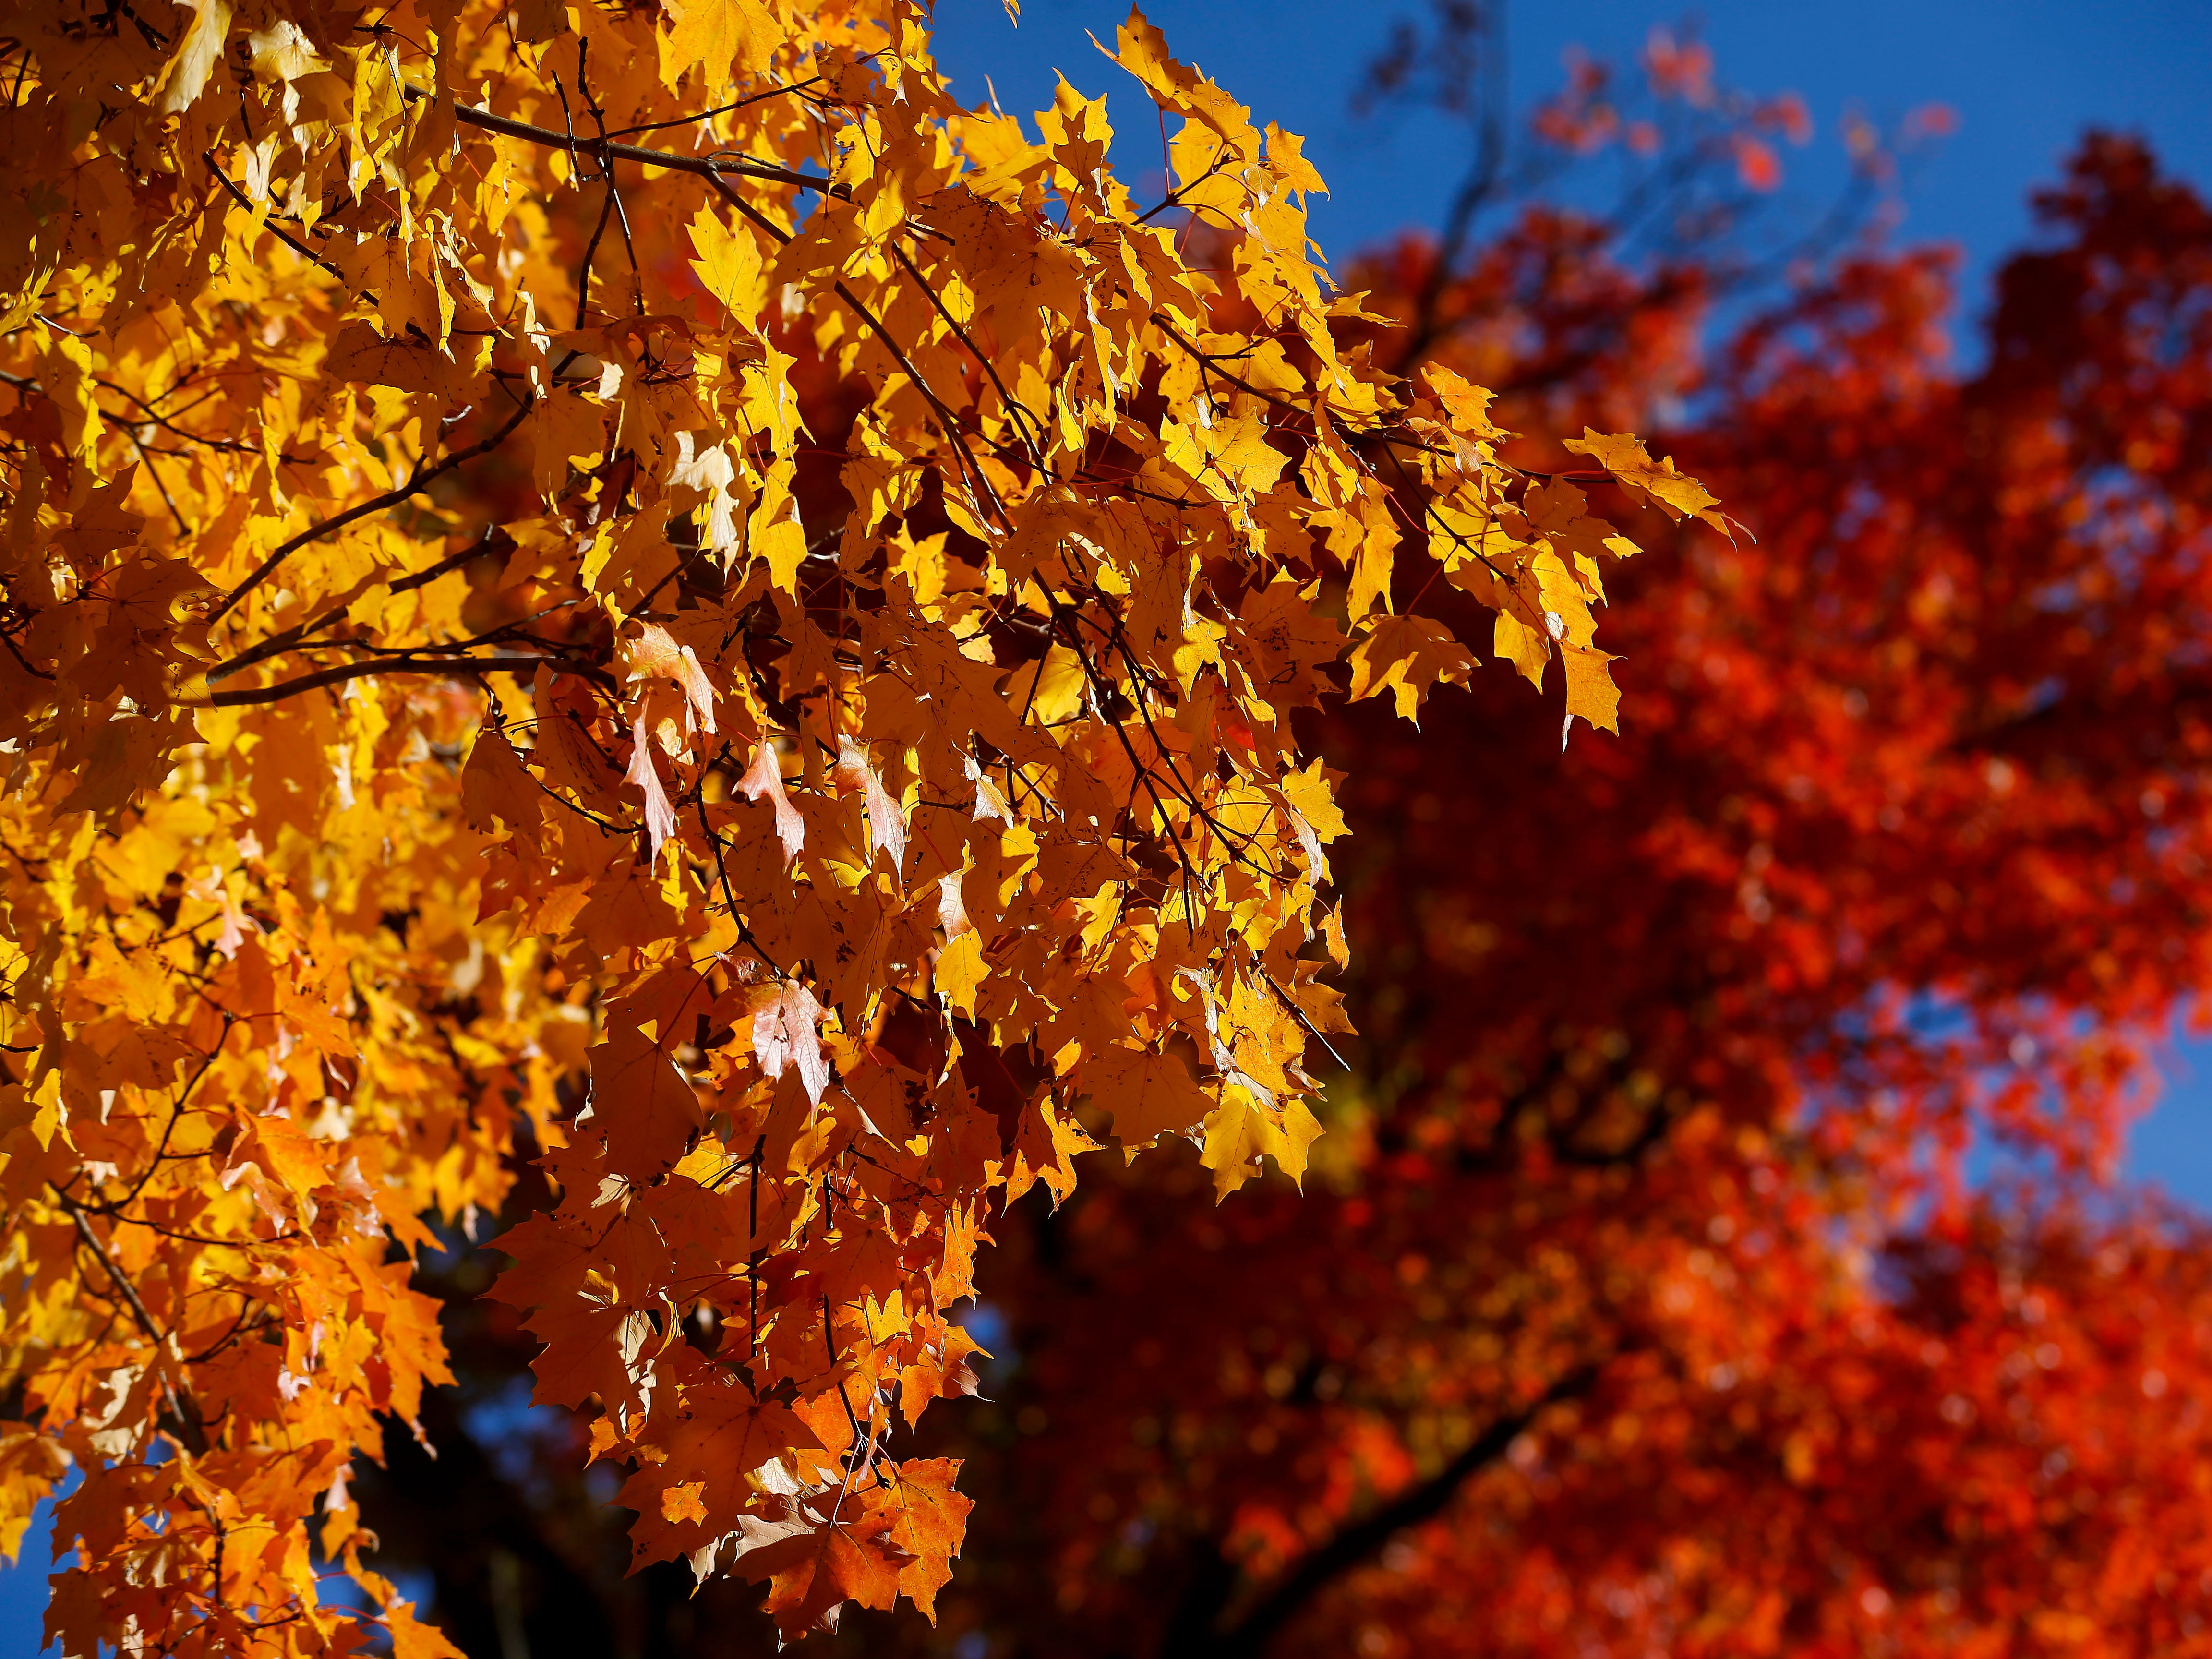 The leaves are aglow with color at Maple Park Cemetery on Monday, Oct. 29, 2018.